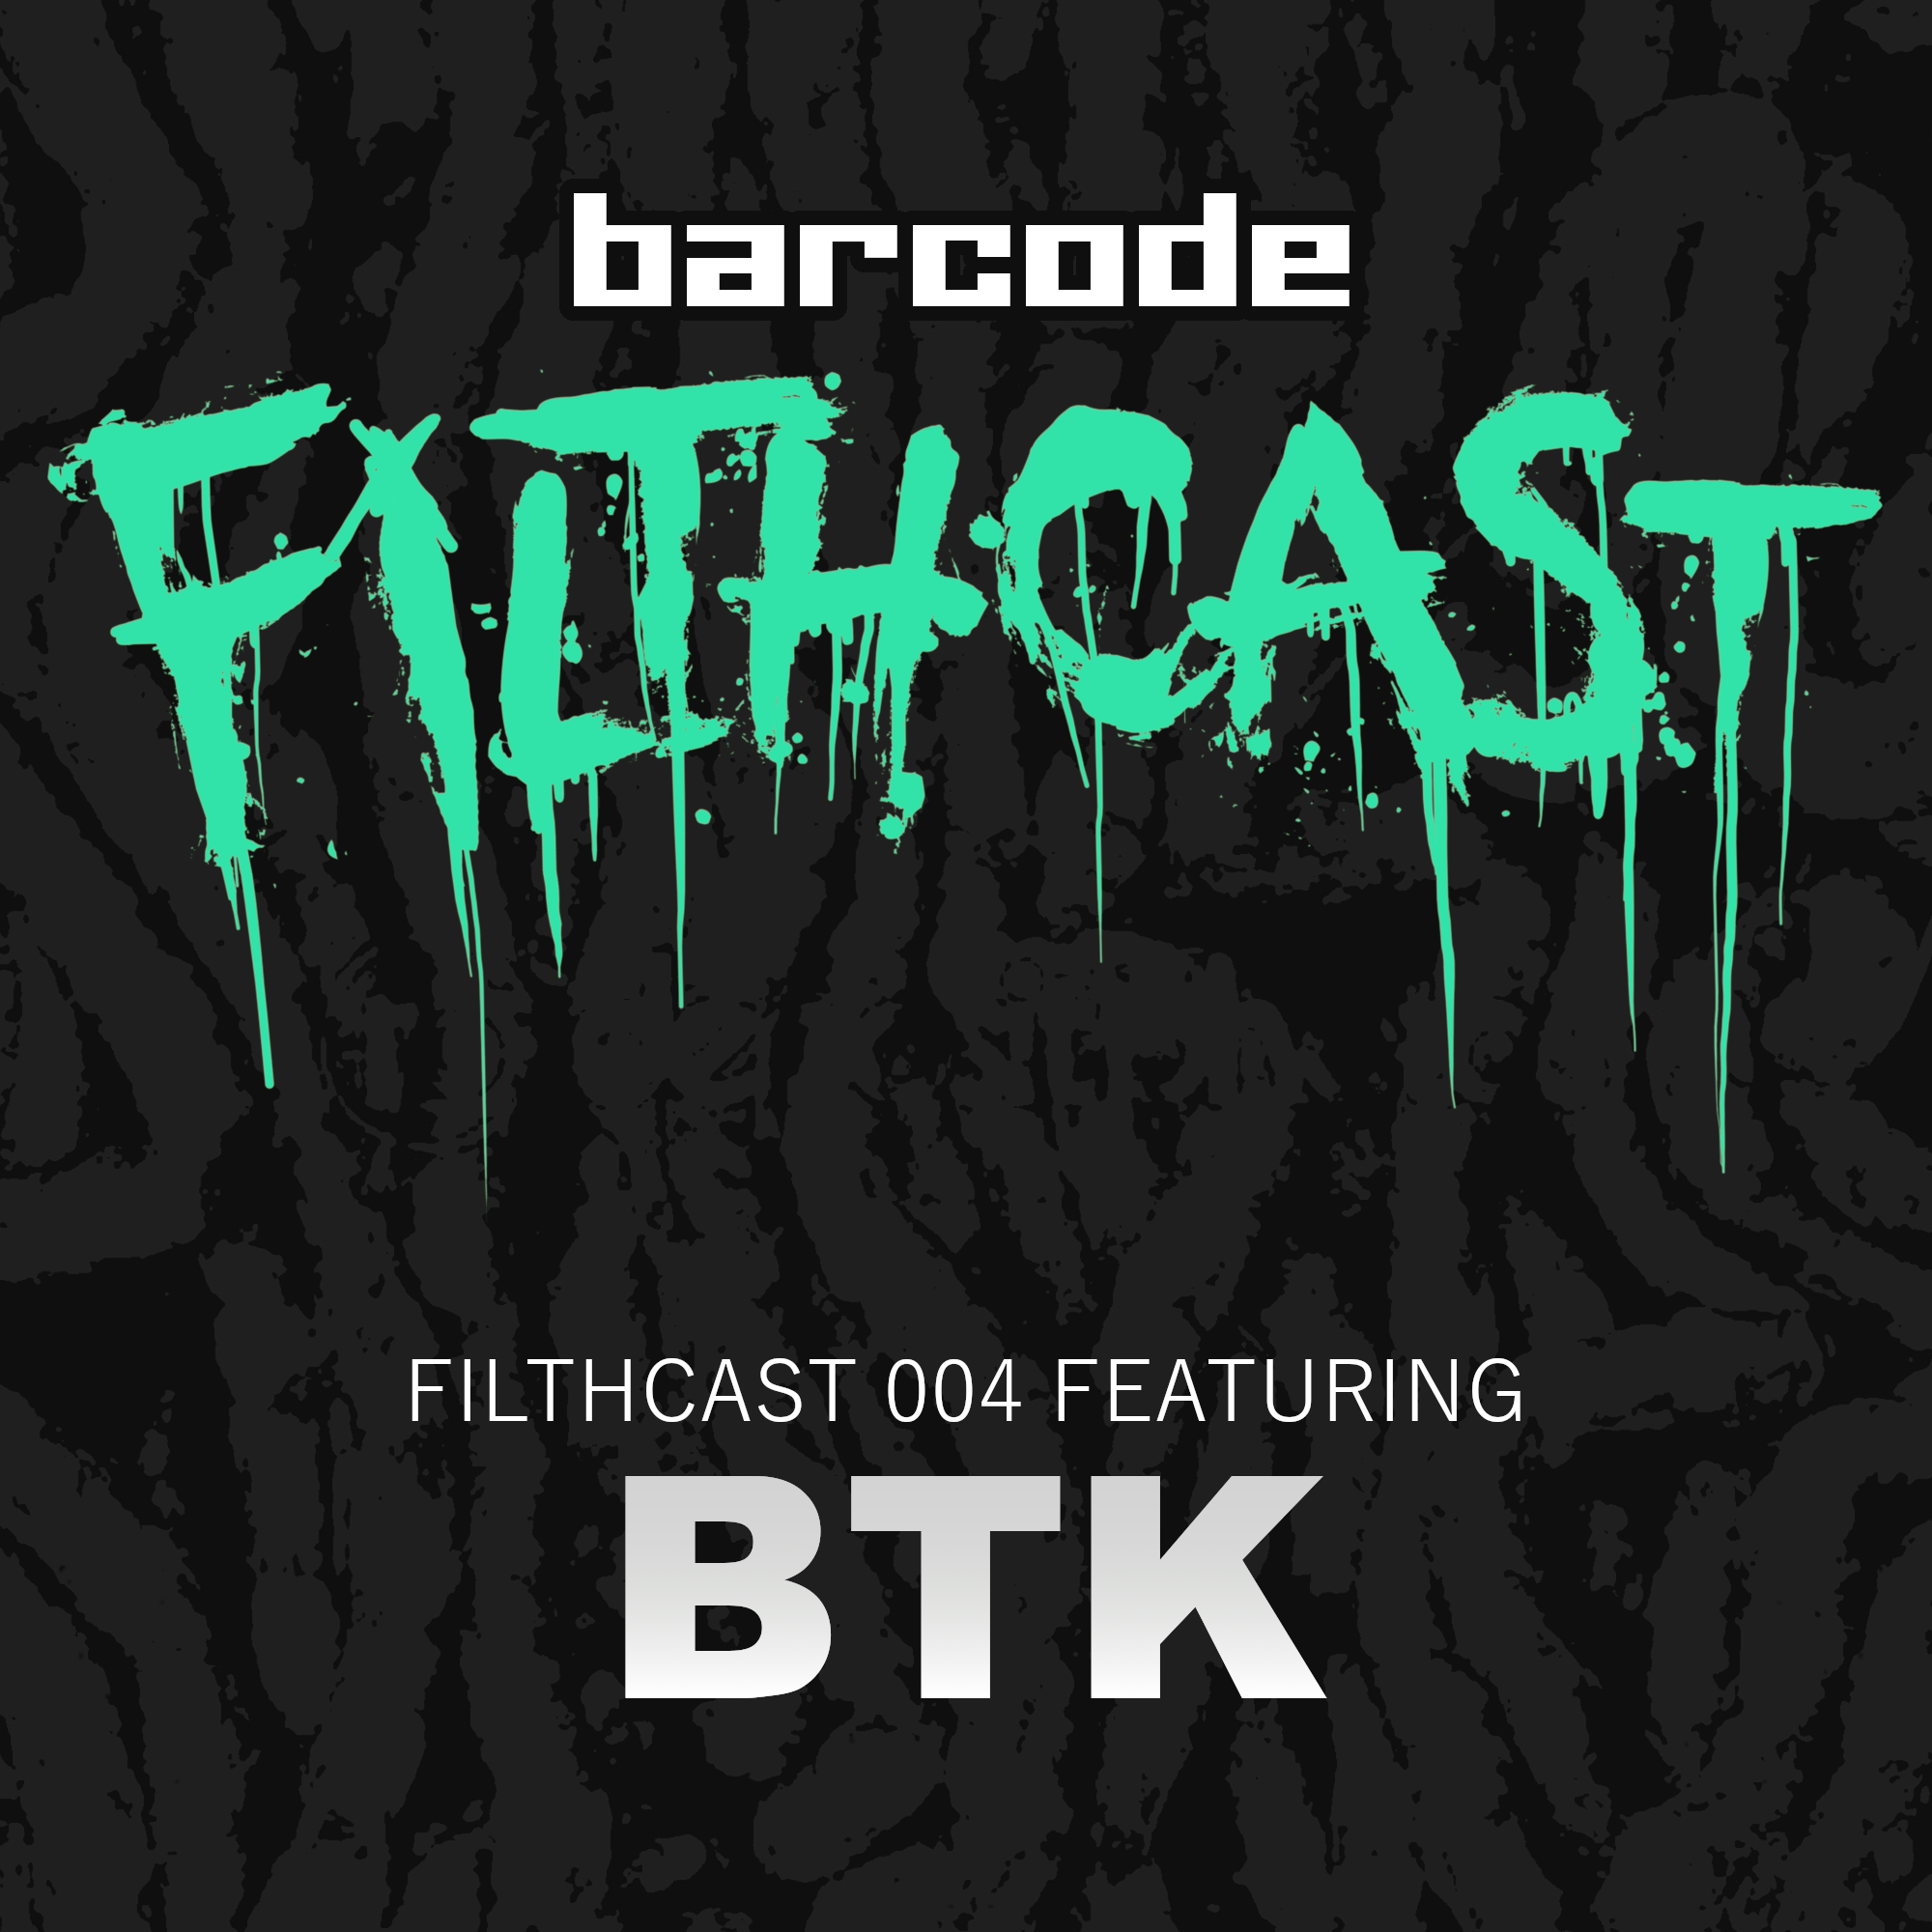 This month the Filthcast is joined by Brazil's very own BTK for a smashing edition of the filth. An admission we've long been waiting for filled with neuro rollers and strange pronunciations, get your twangers out and bounce your balls!